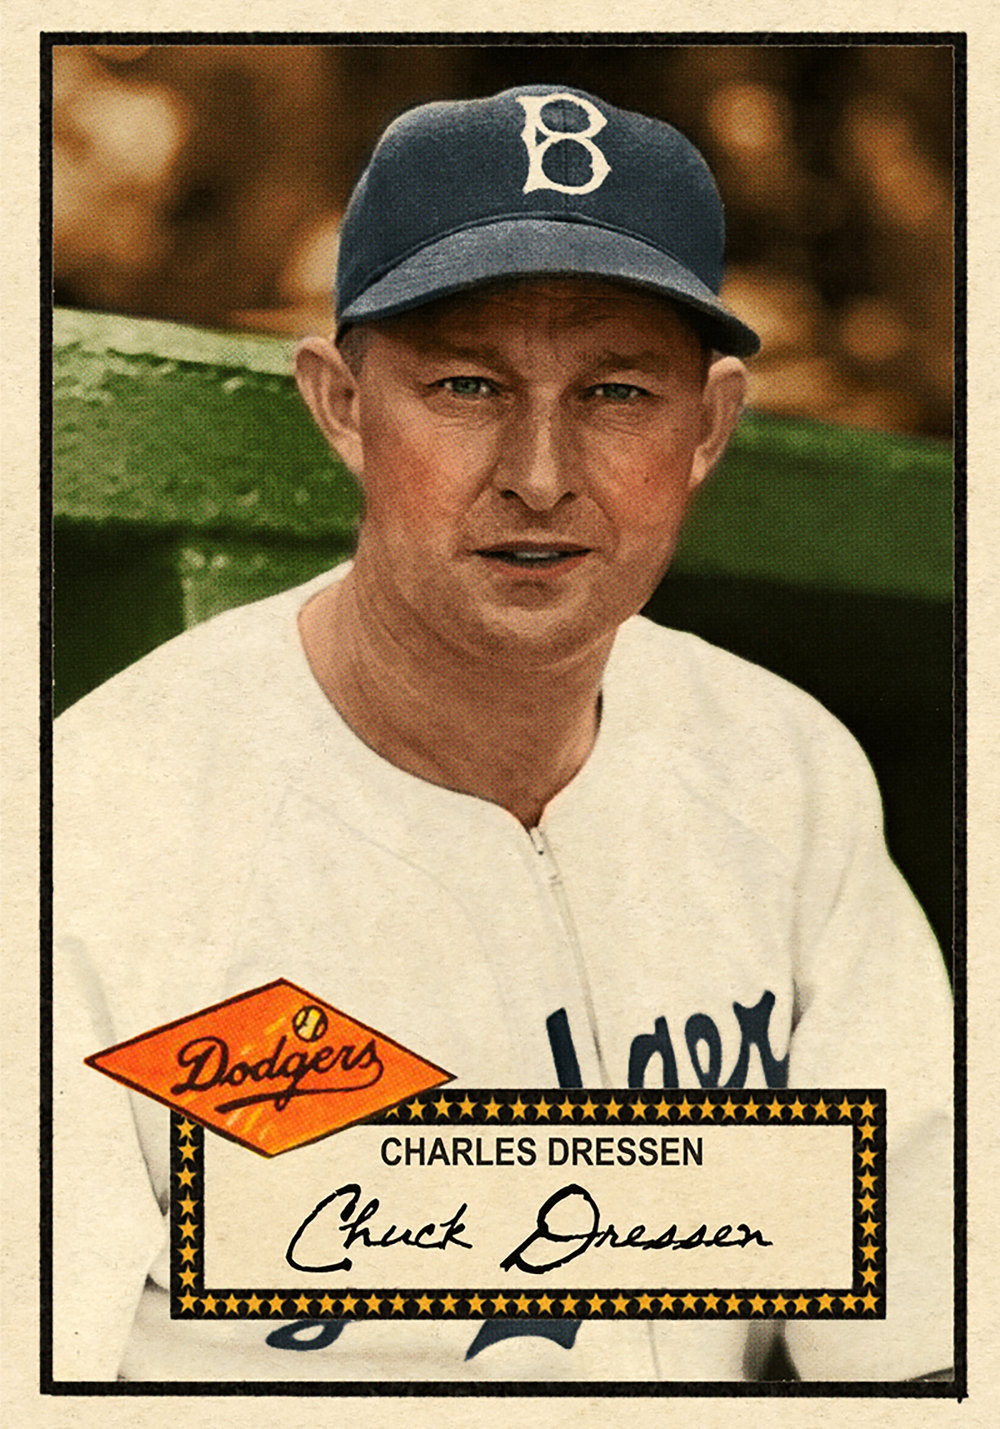 1952 BASEBALL STARS SERIES #190 CHARLES DRESSEN 3/6/17 Auction Closes at $135.50 USD - Current Poulation of 1